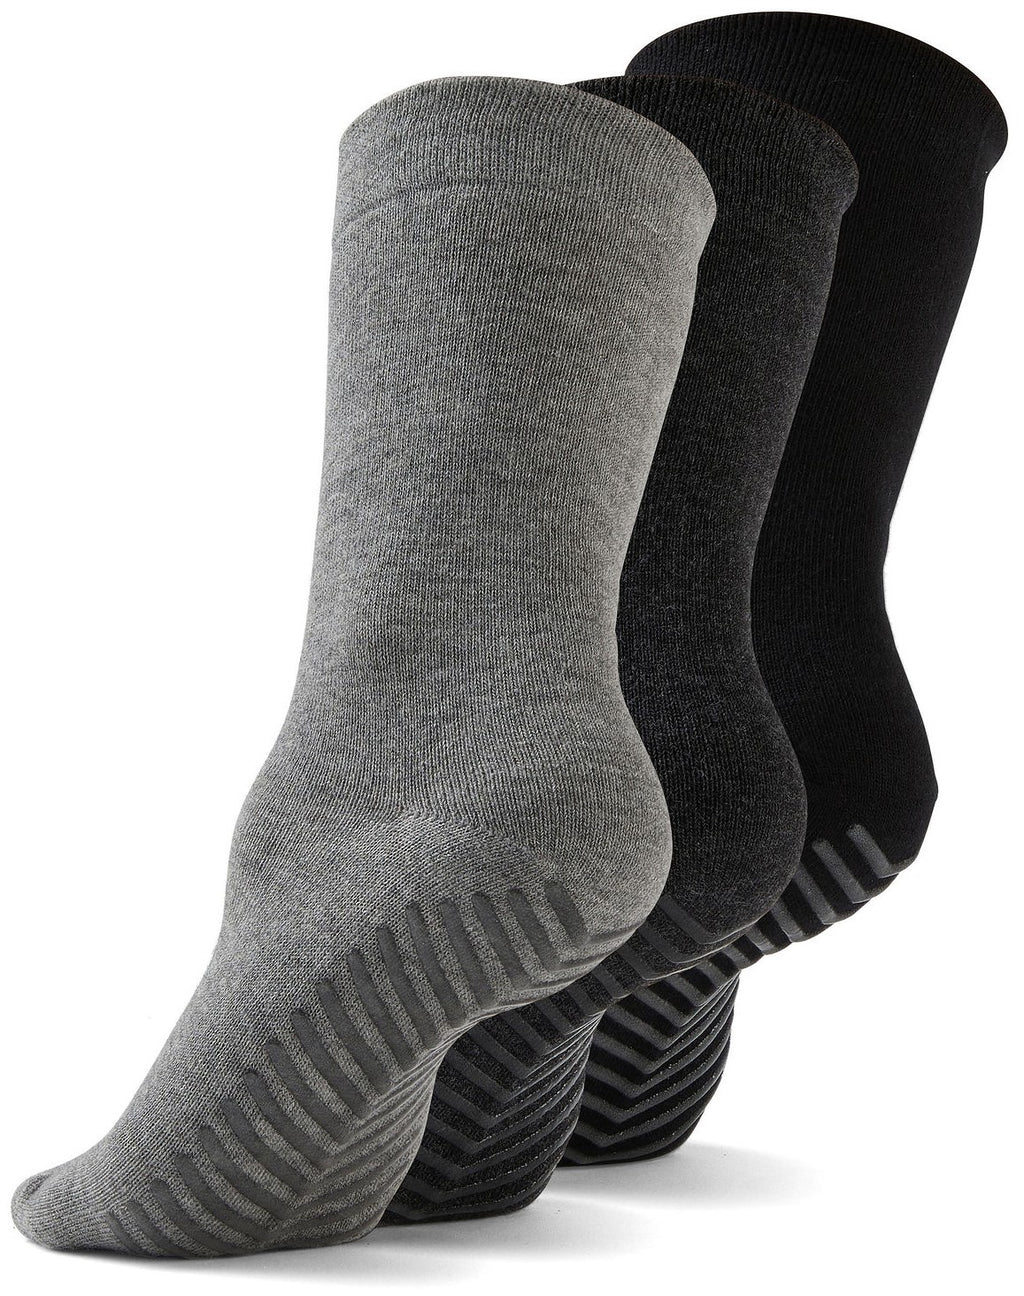 Gripjoy Men's Crew Grip Socks Black & Greys 3-Pack - Gripjoy Socks